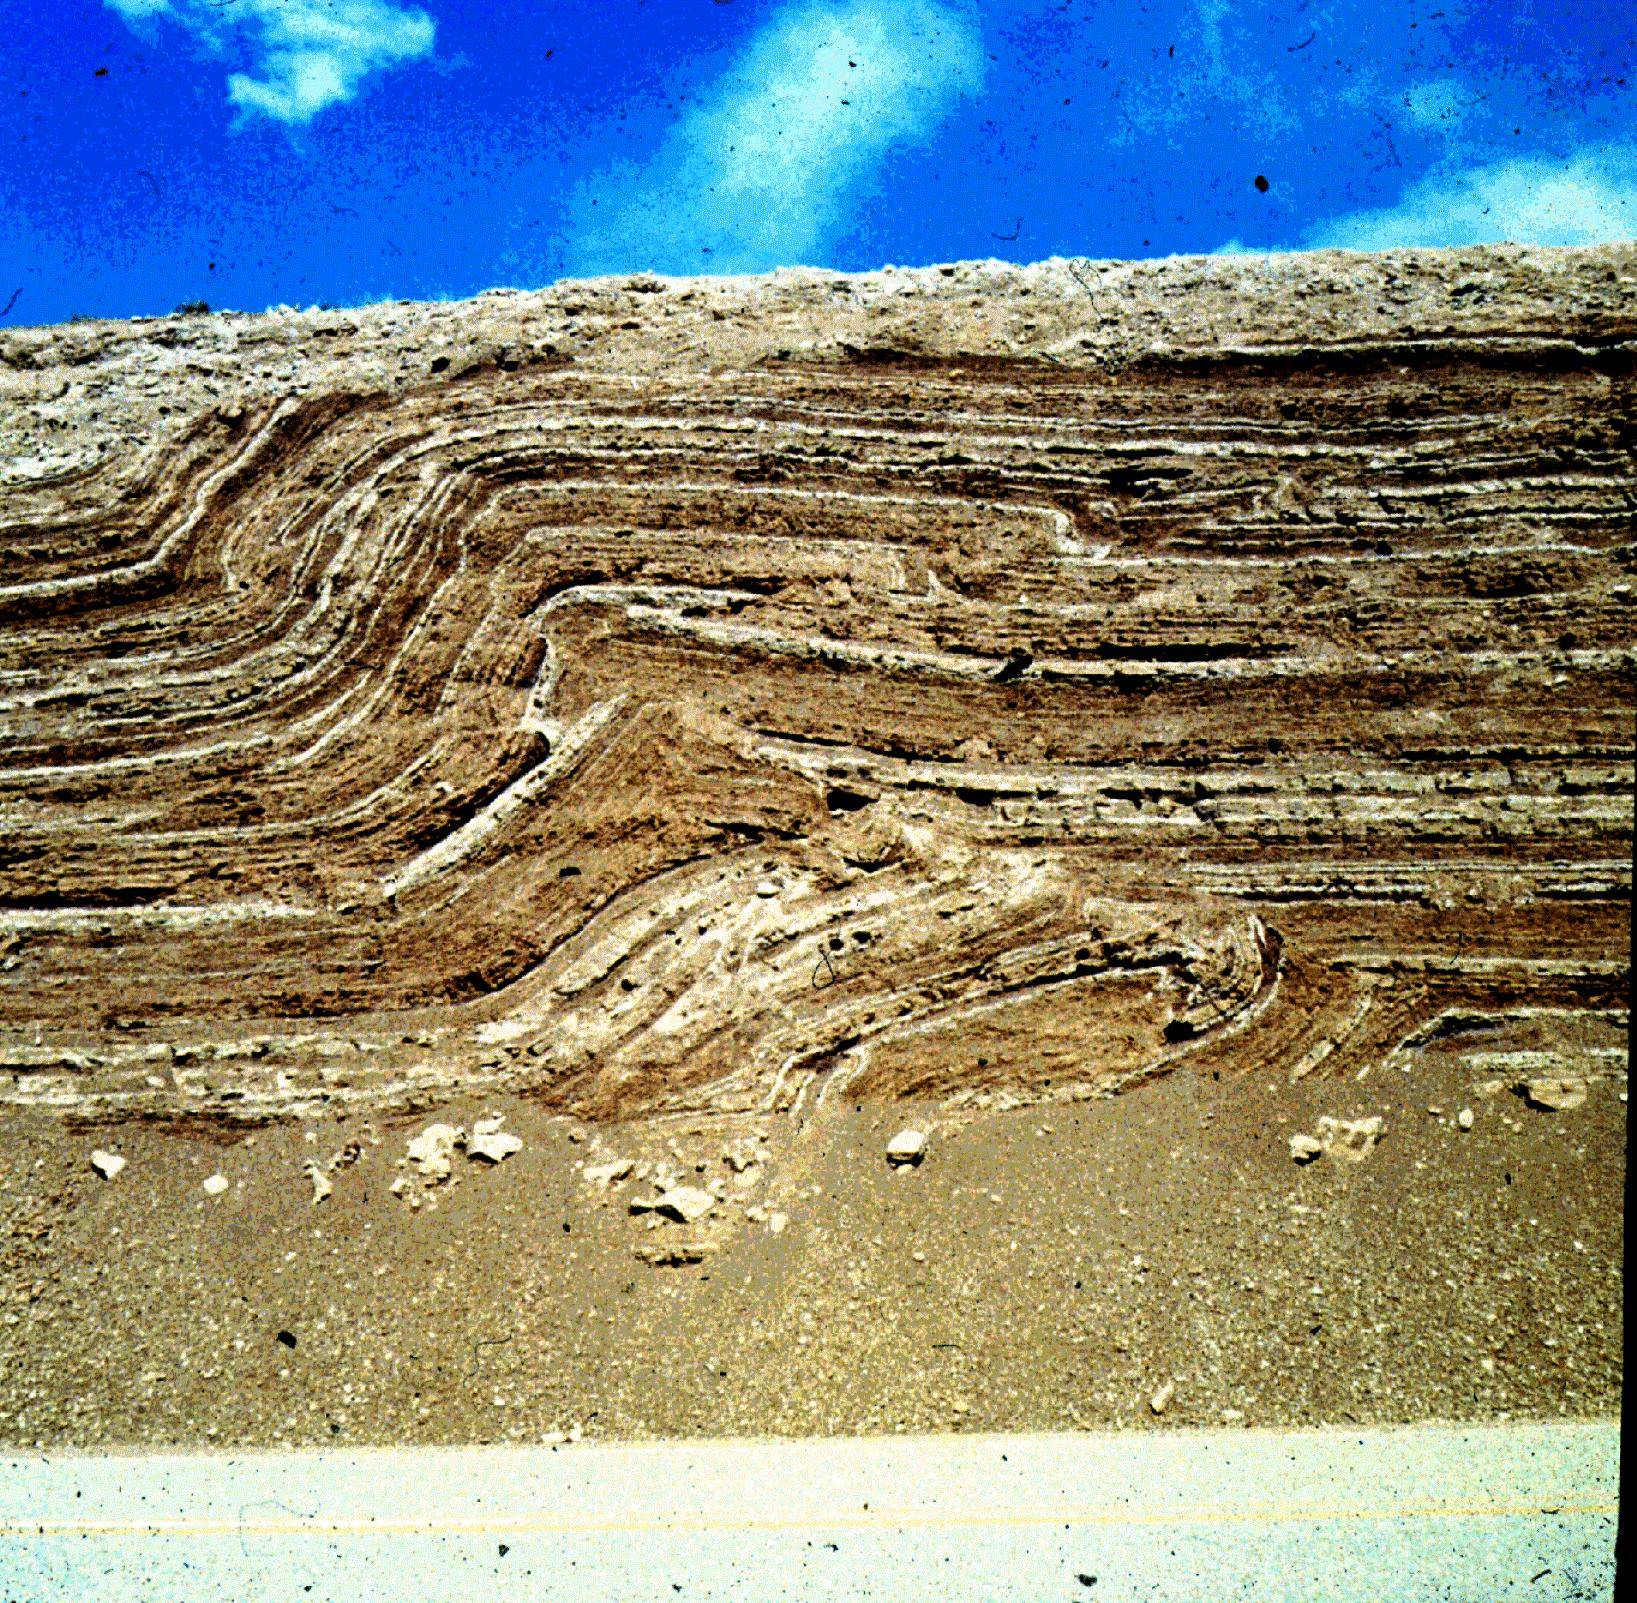 Images of folds and faults | Middle School Science at ...